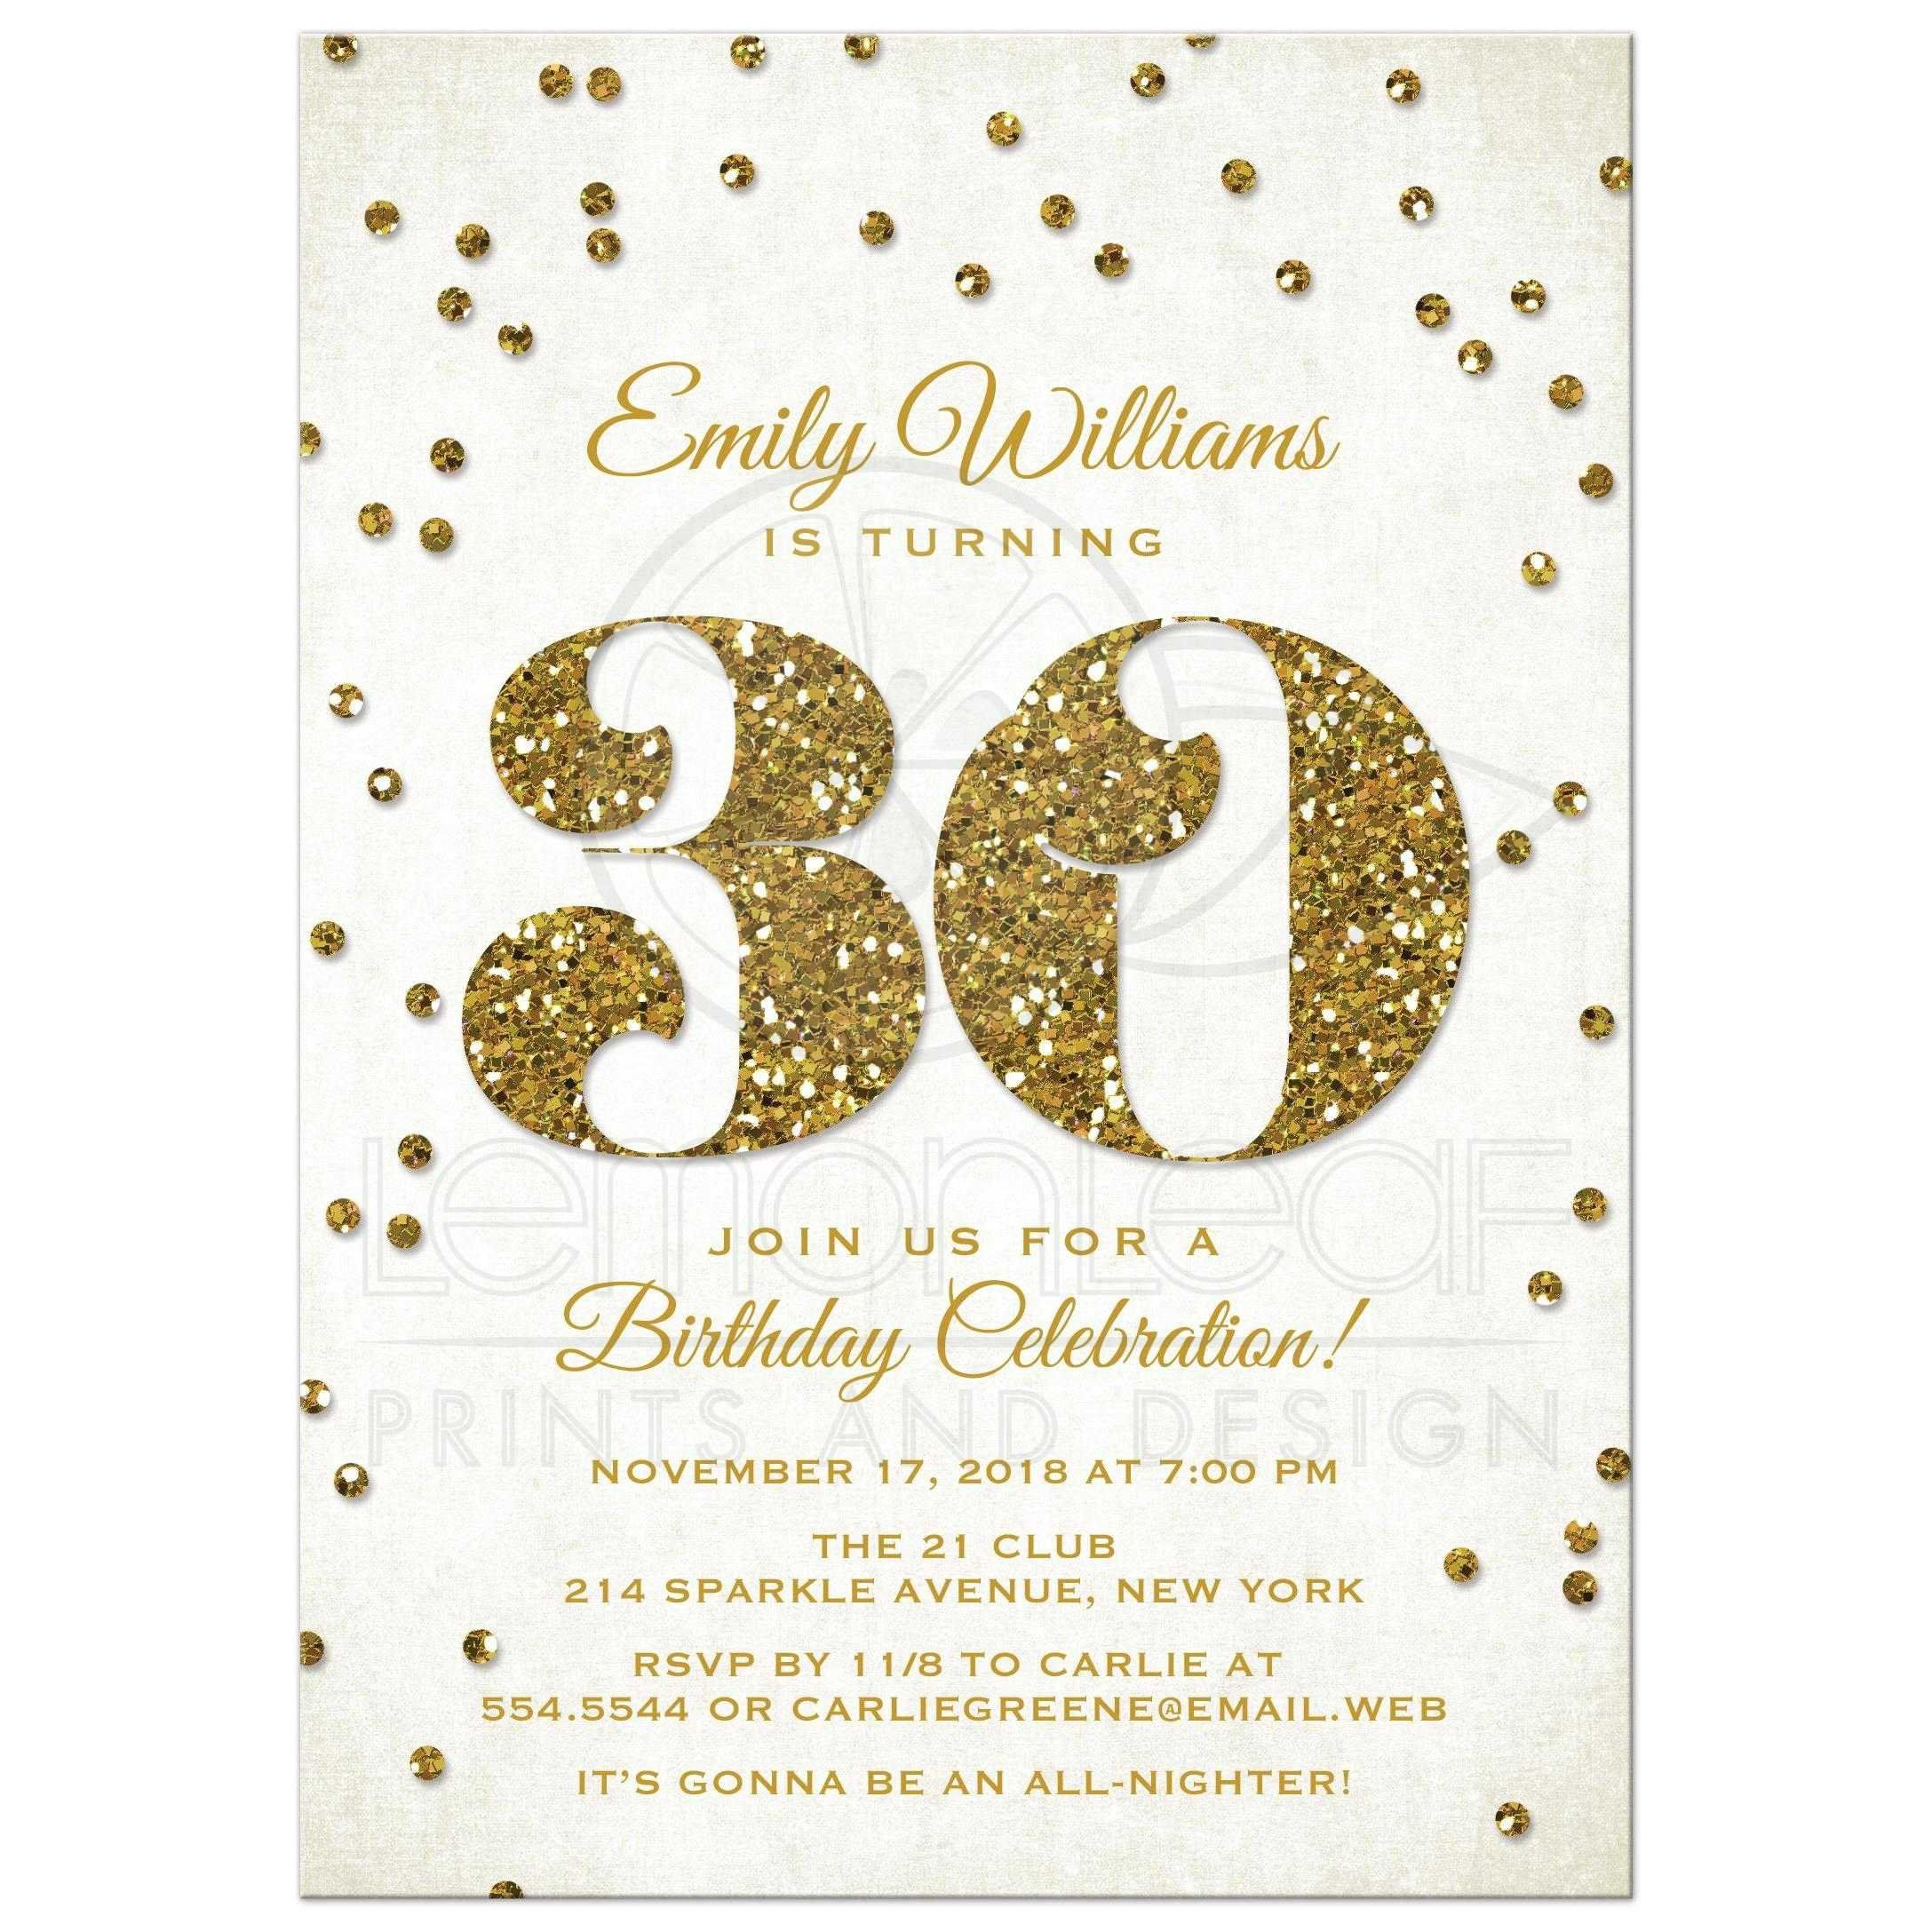 30th Birthday Invitations Templates Free Printable  Free Birthday Template Invitations